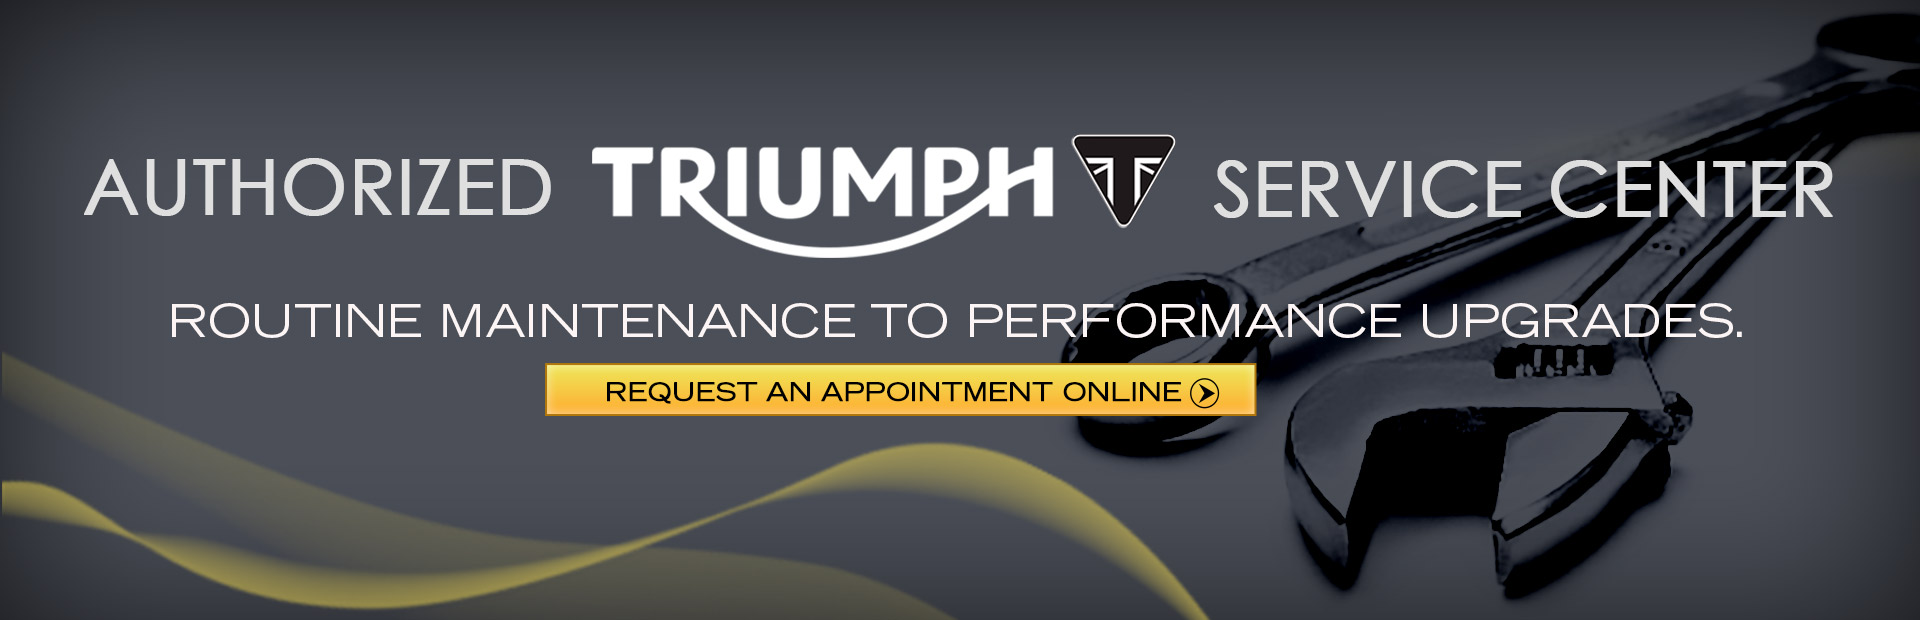 We are an authorized Triumph service center that offers routine maintenance to performance upgrades. Click here to request an appointment online.